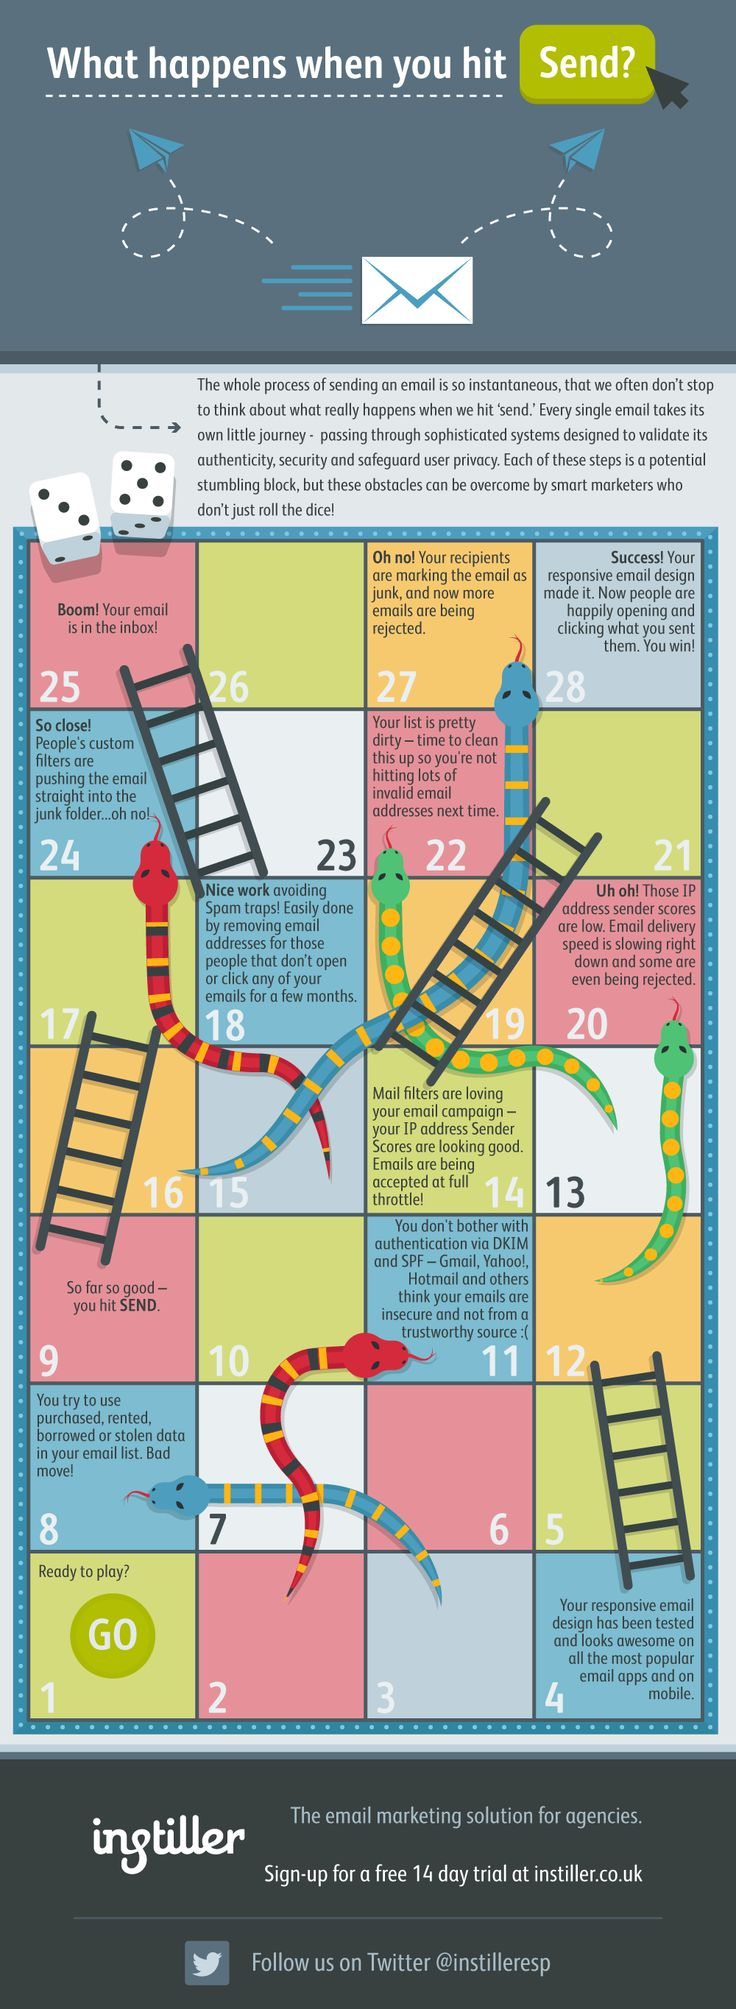 Email Campaign Snakes And Ladders  Socialfish